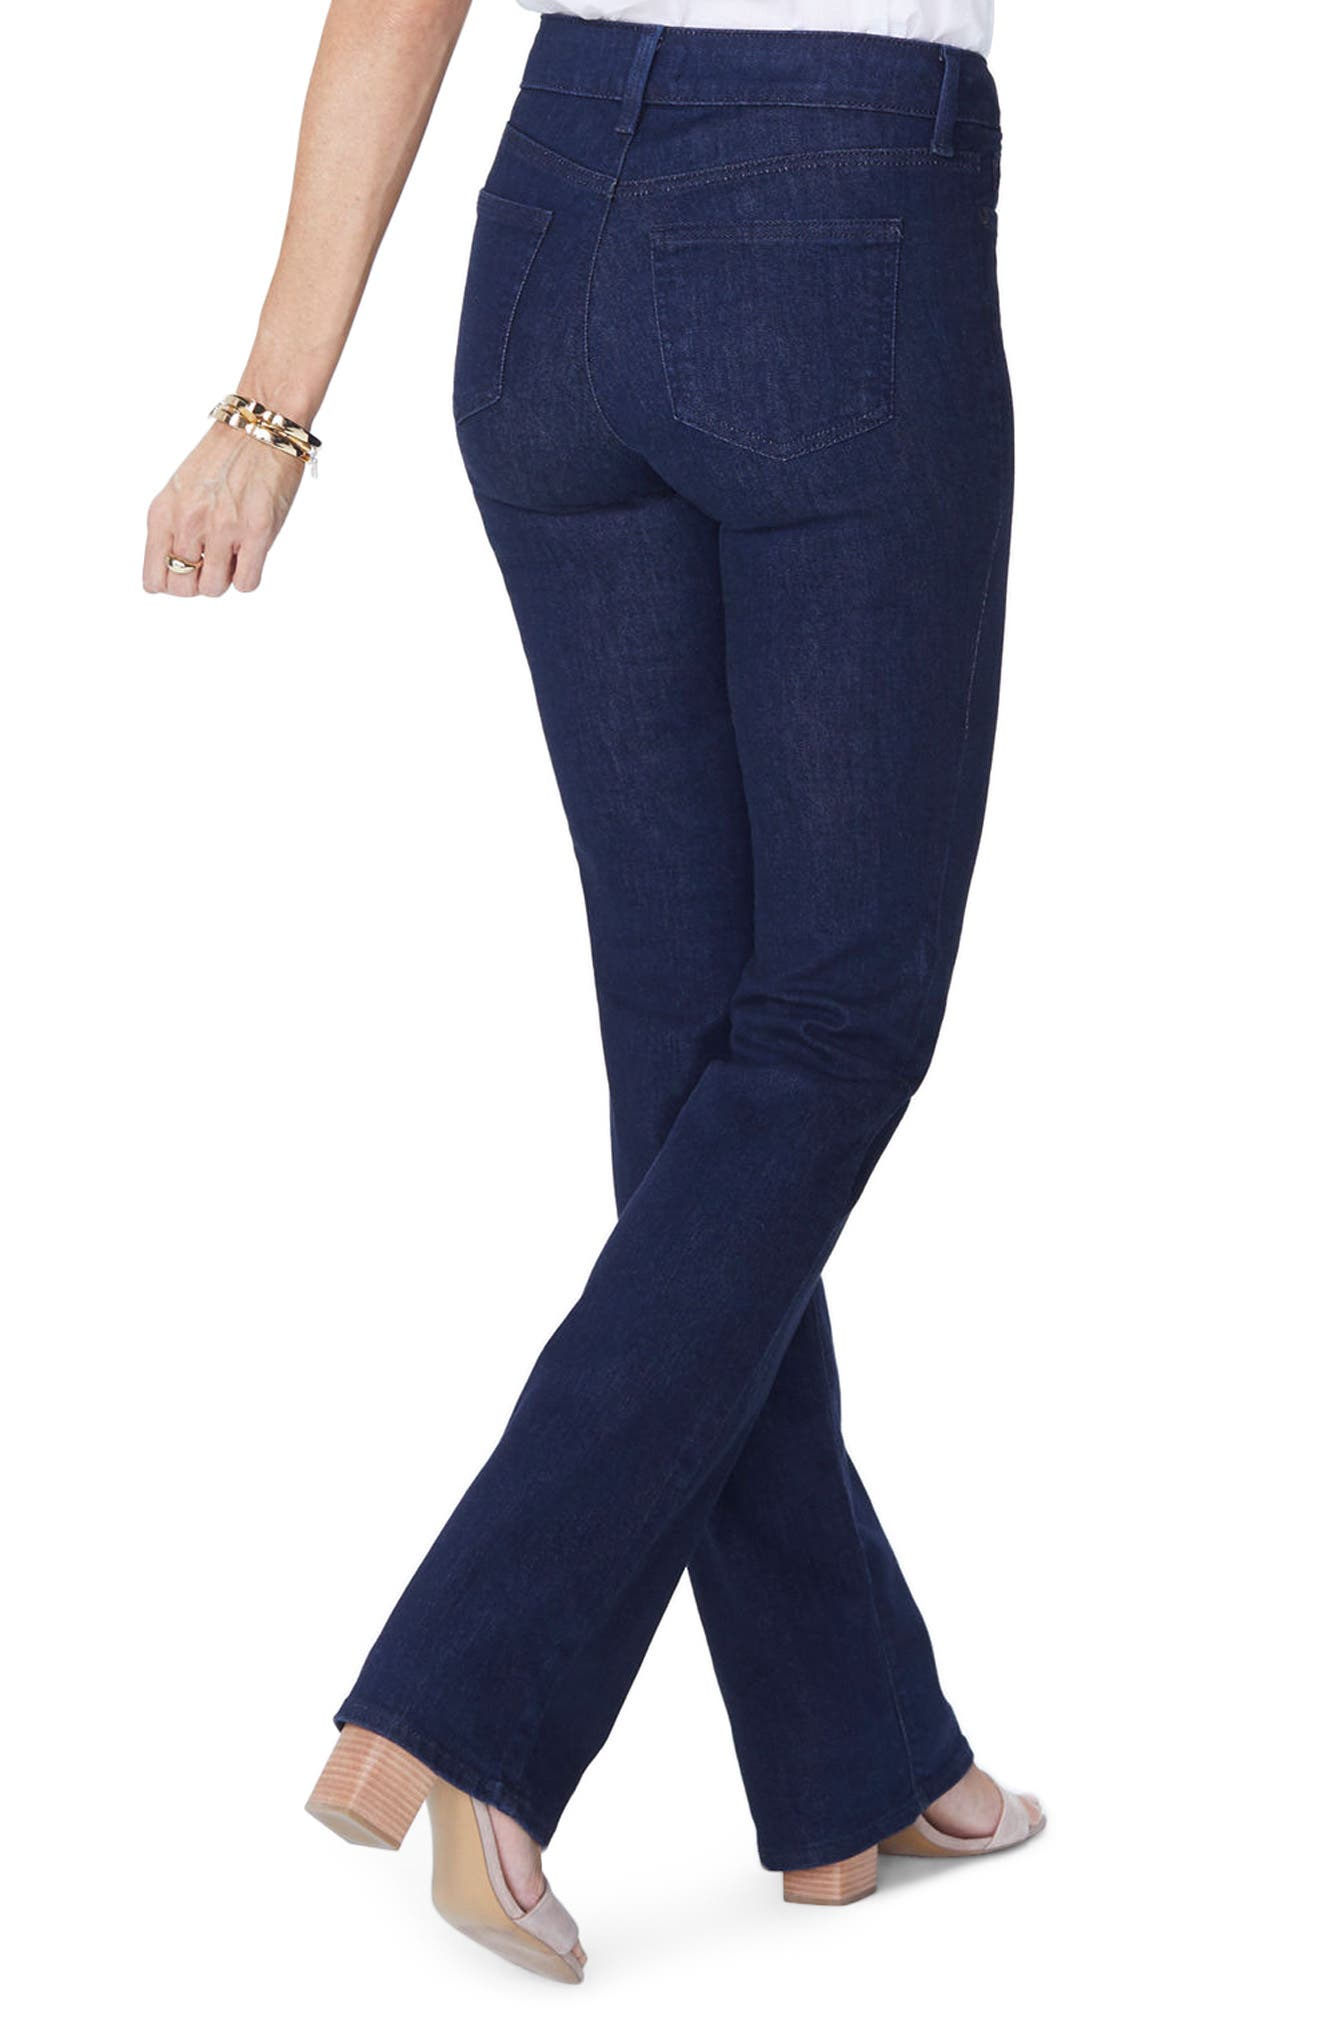 Barbara High Waist Stretch Bootcut Jeans,                             Alternate thumbnail 2, color,                             RINSE